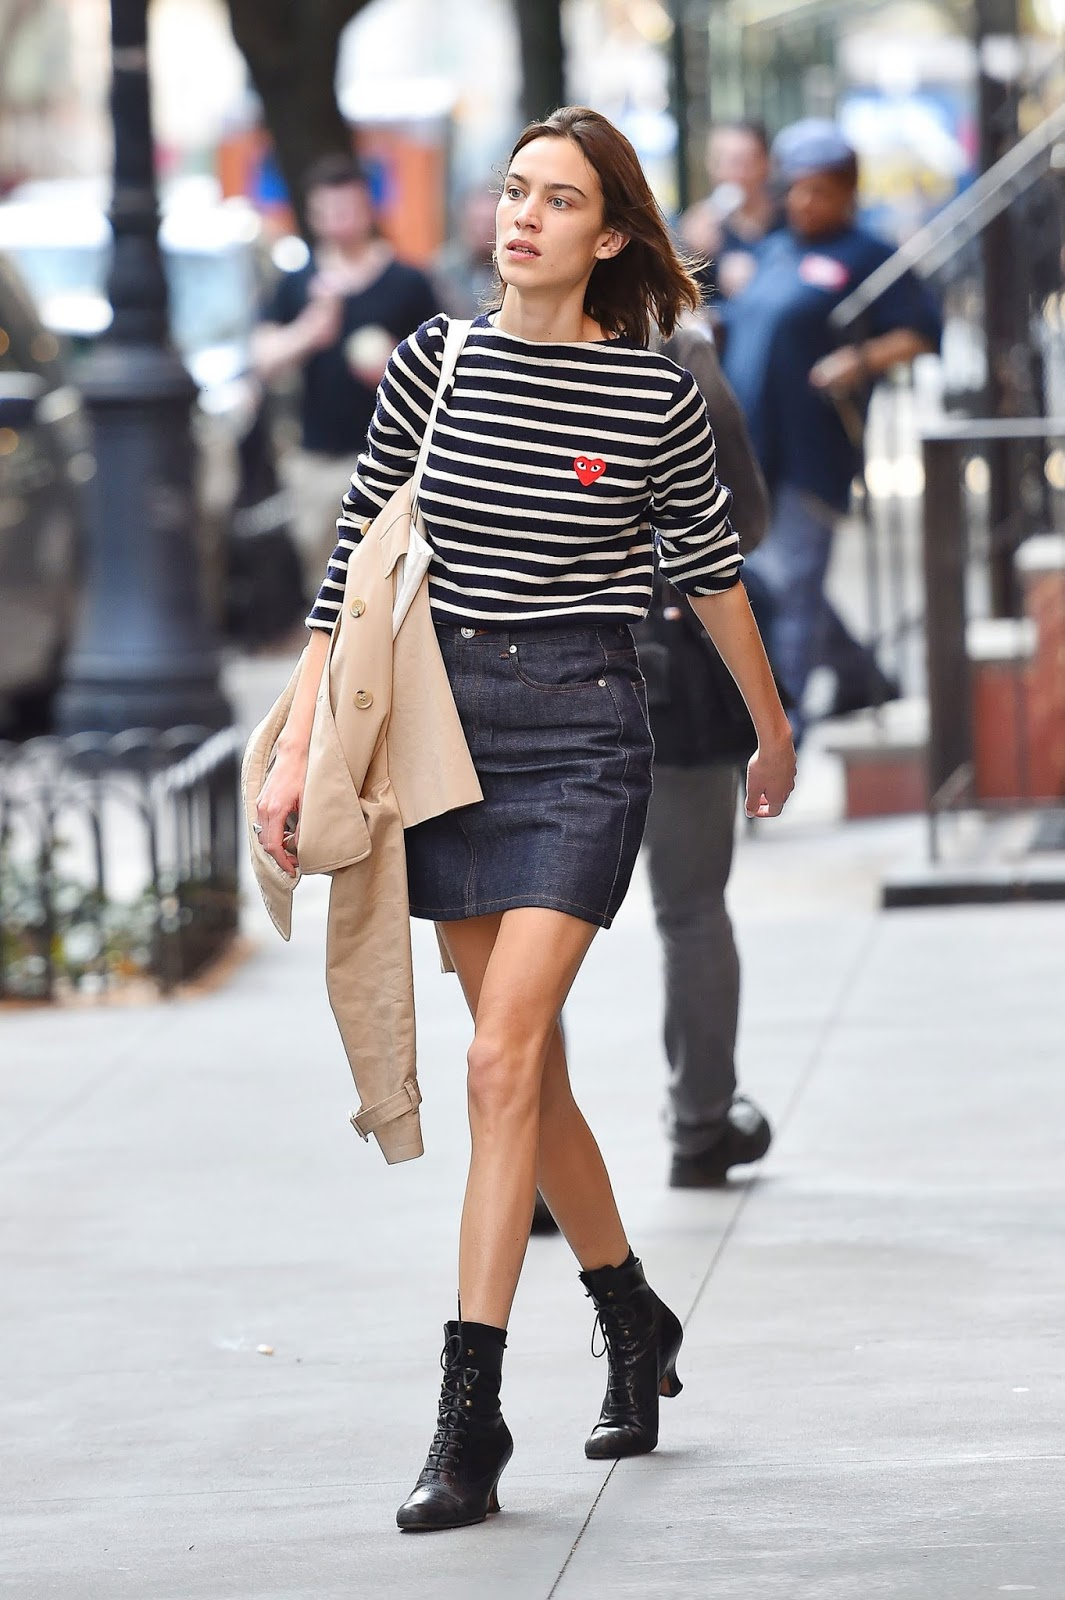 Alexa Chung Proves the Classic Cool-Factor of a Striped Top